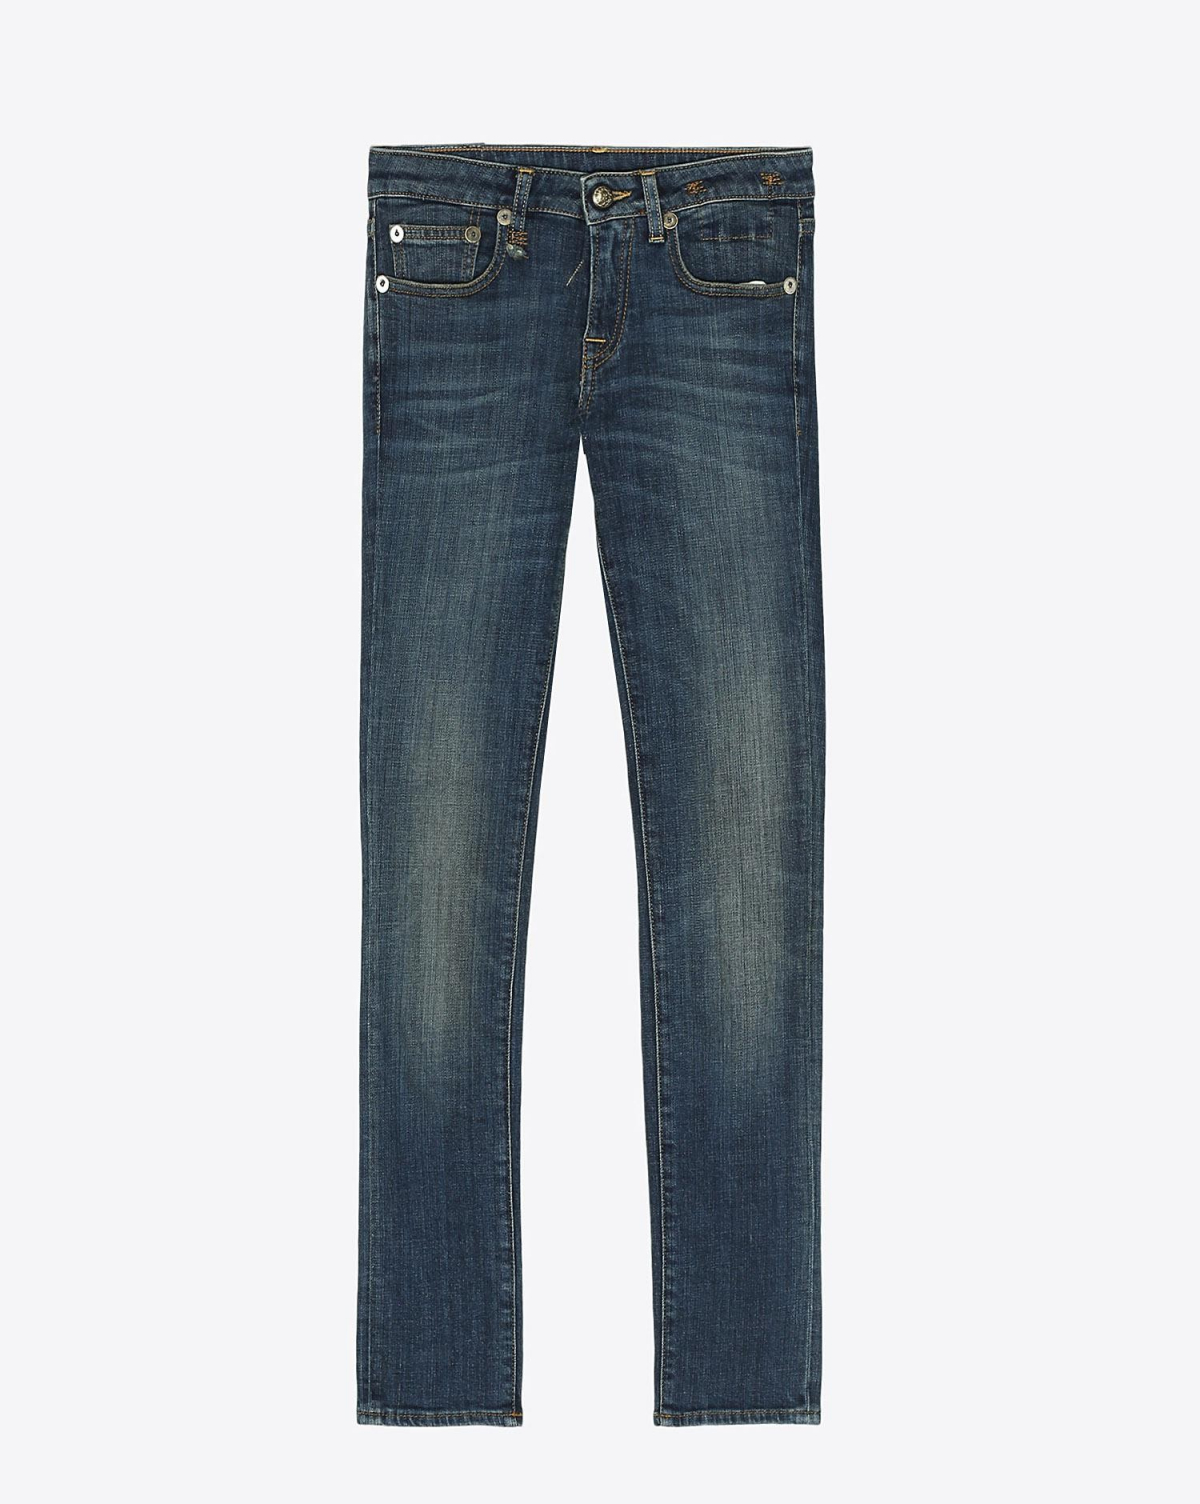 R13 Denim Permanent Kate Skinny - Dark Vintage Blue